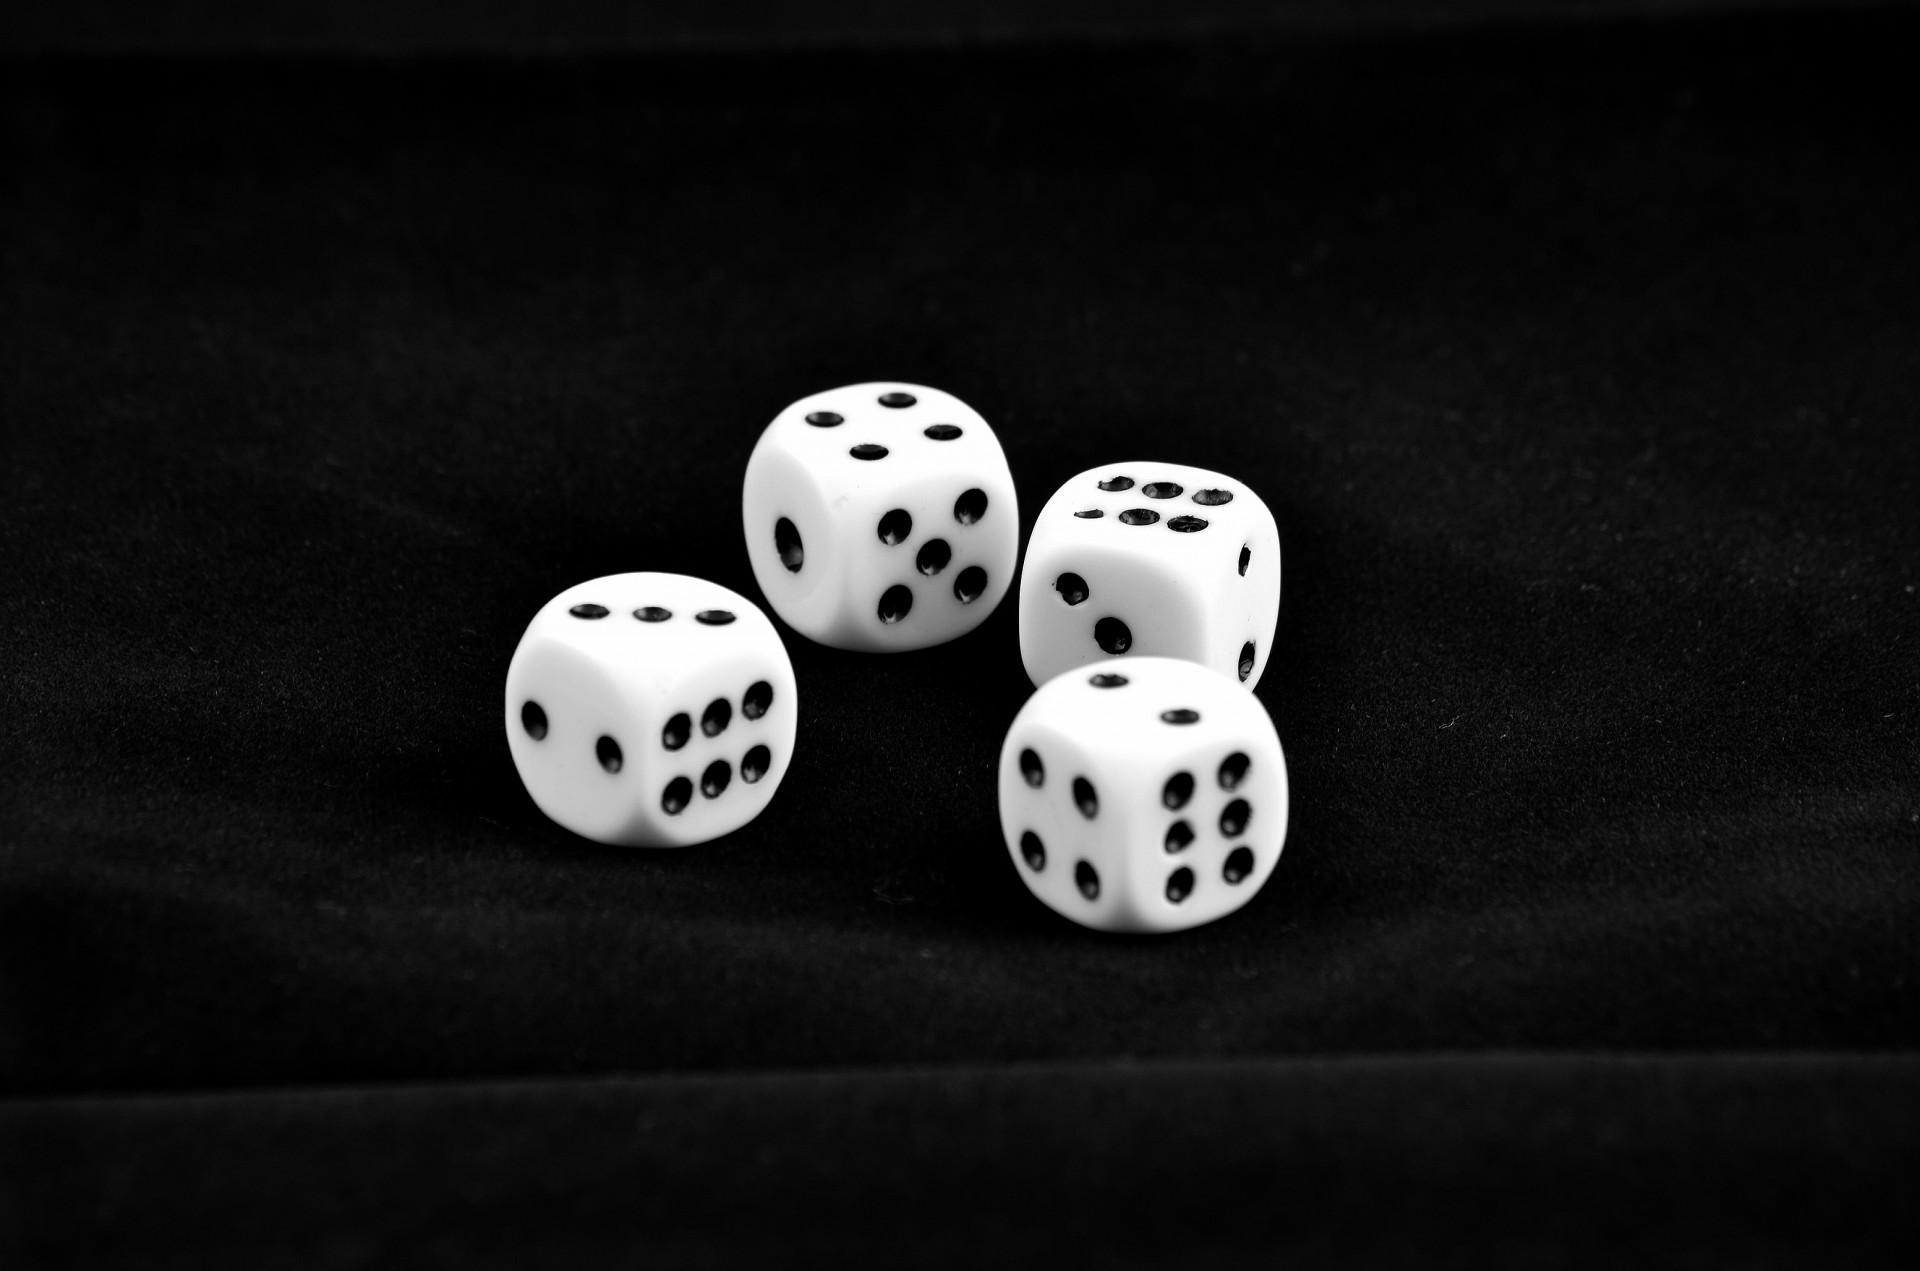 Night King Hd Wallpaper White Dice Free Stock Photo Public Domain Pictures